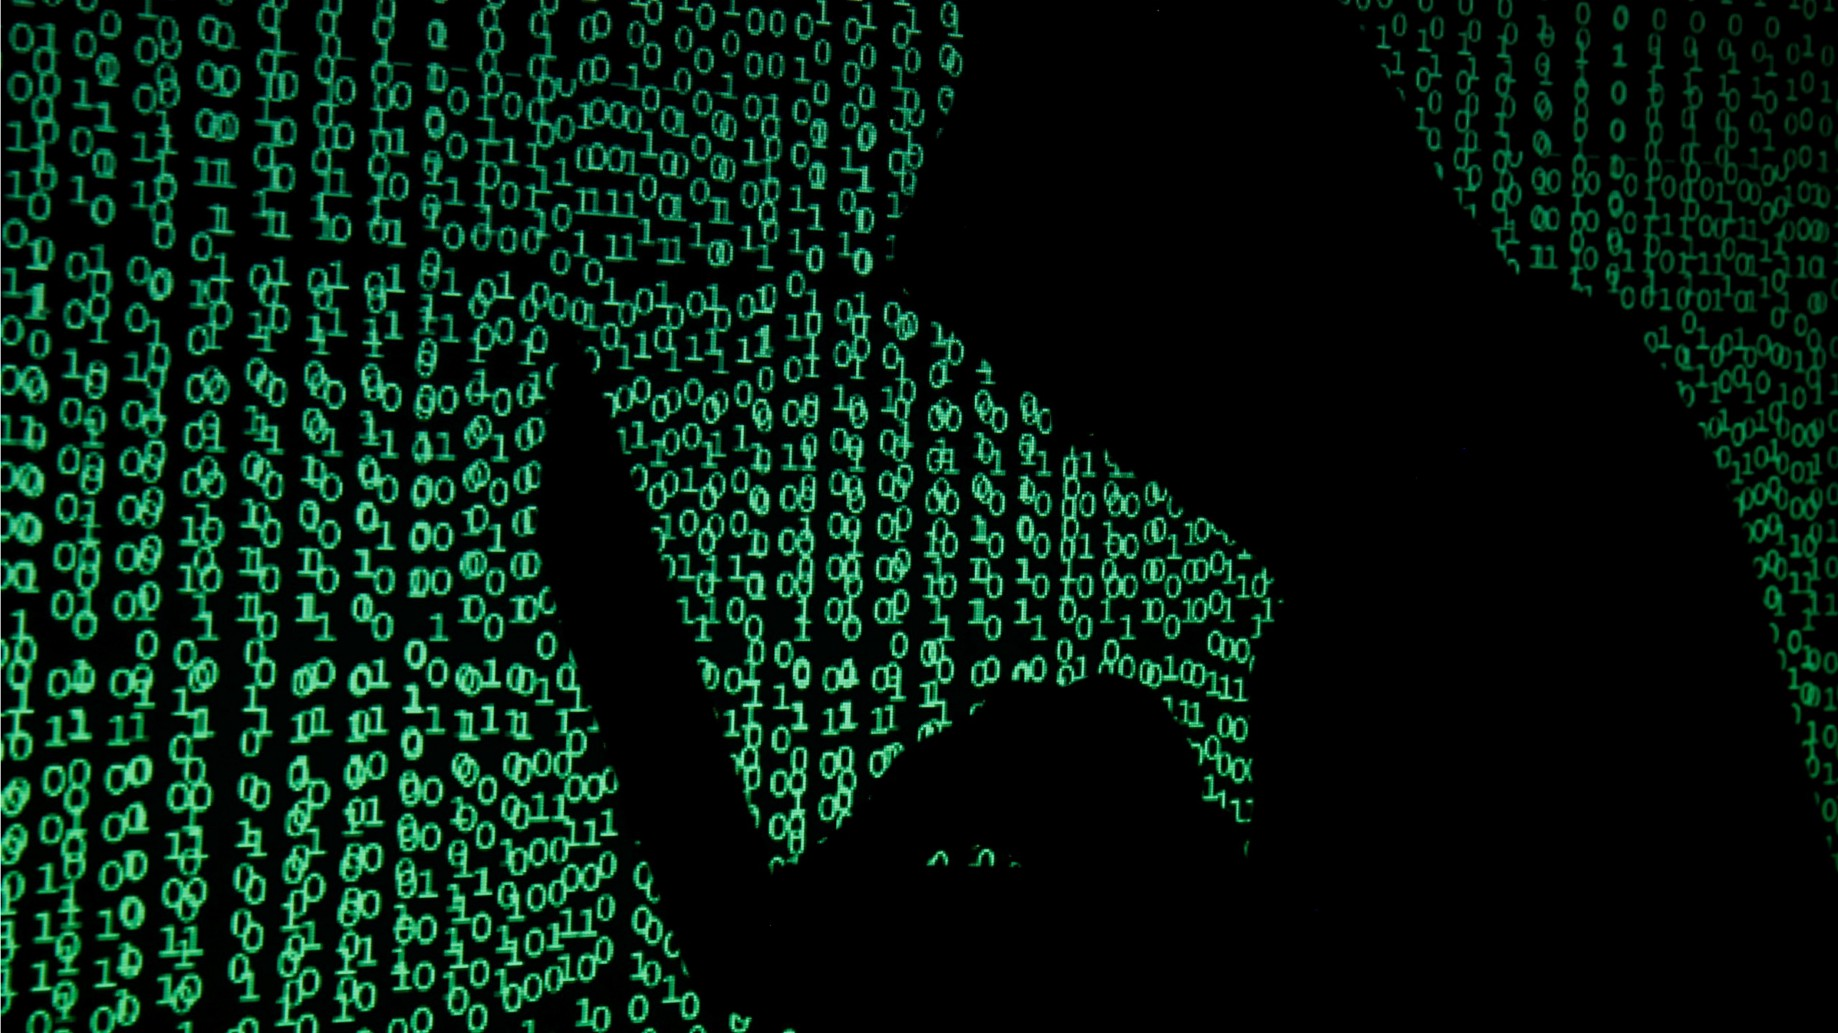 Cyber-Harm and Who Would Want to Be A CSO/CIO? - ASecuritySite: When